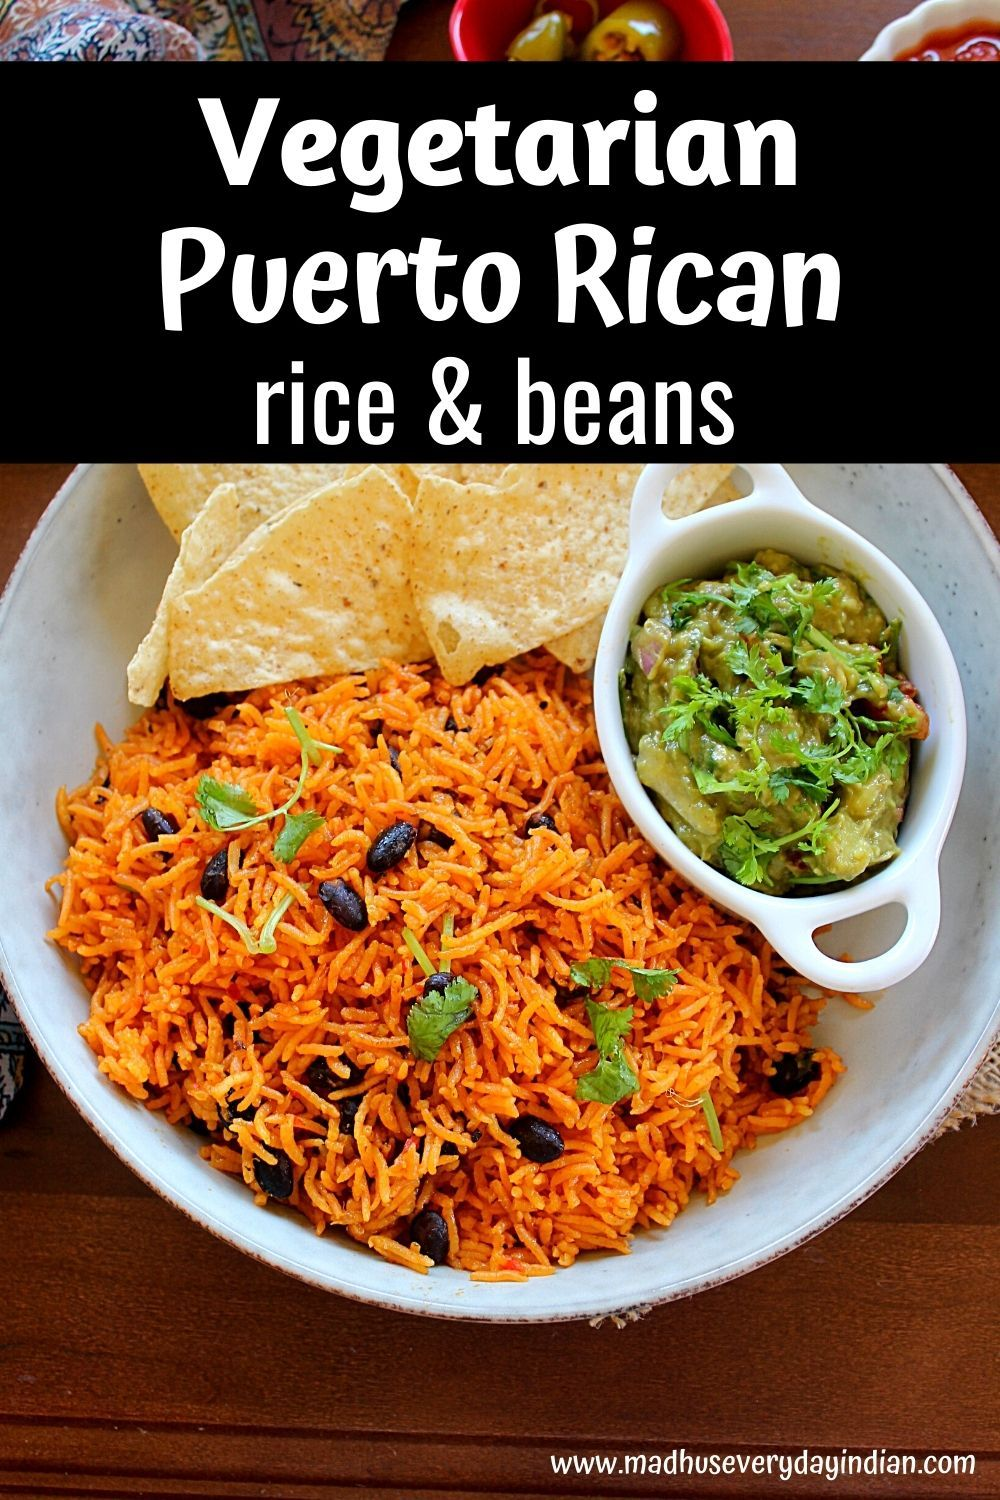 Instant Pot Puerto Rican Rice And Beans Recipe Tasty Vegetarian Recipes Vegetarian Recipes Recipes